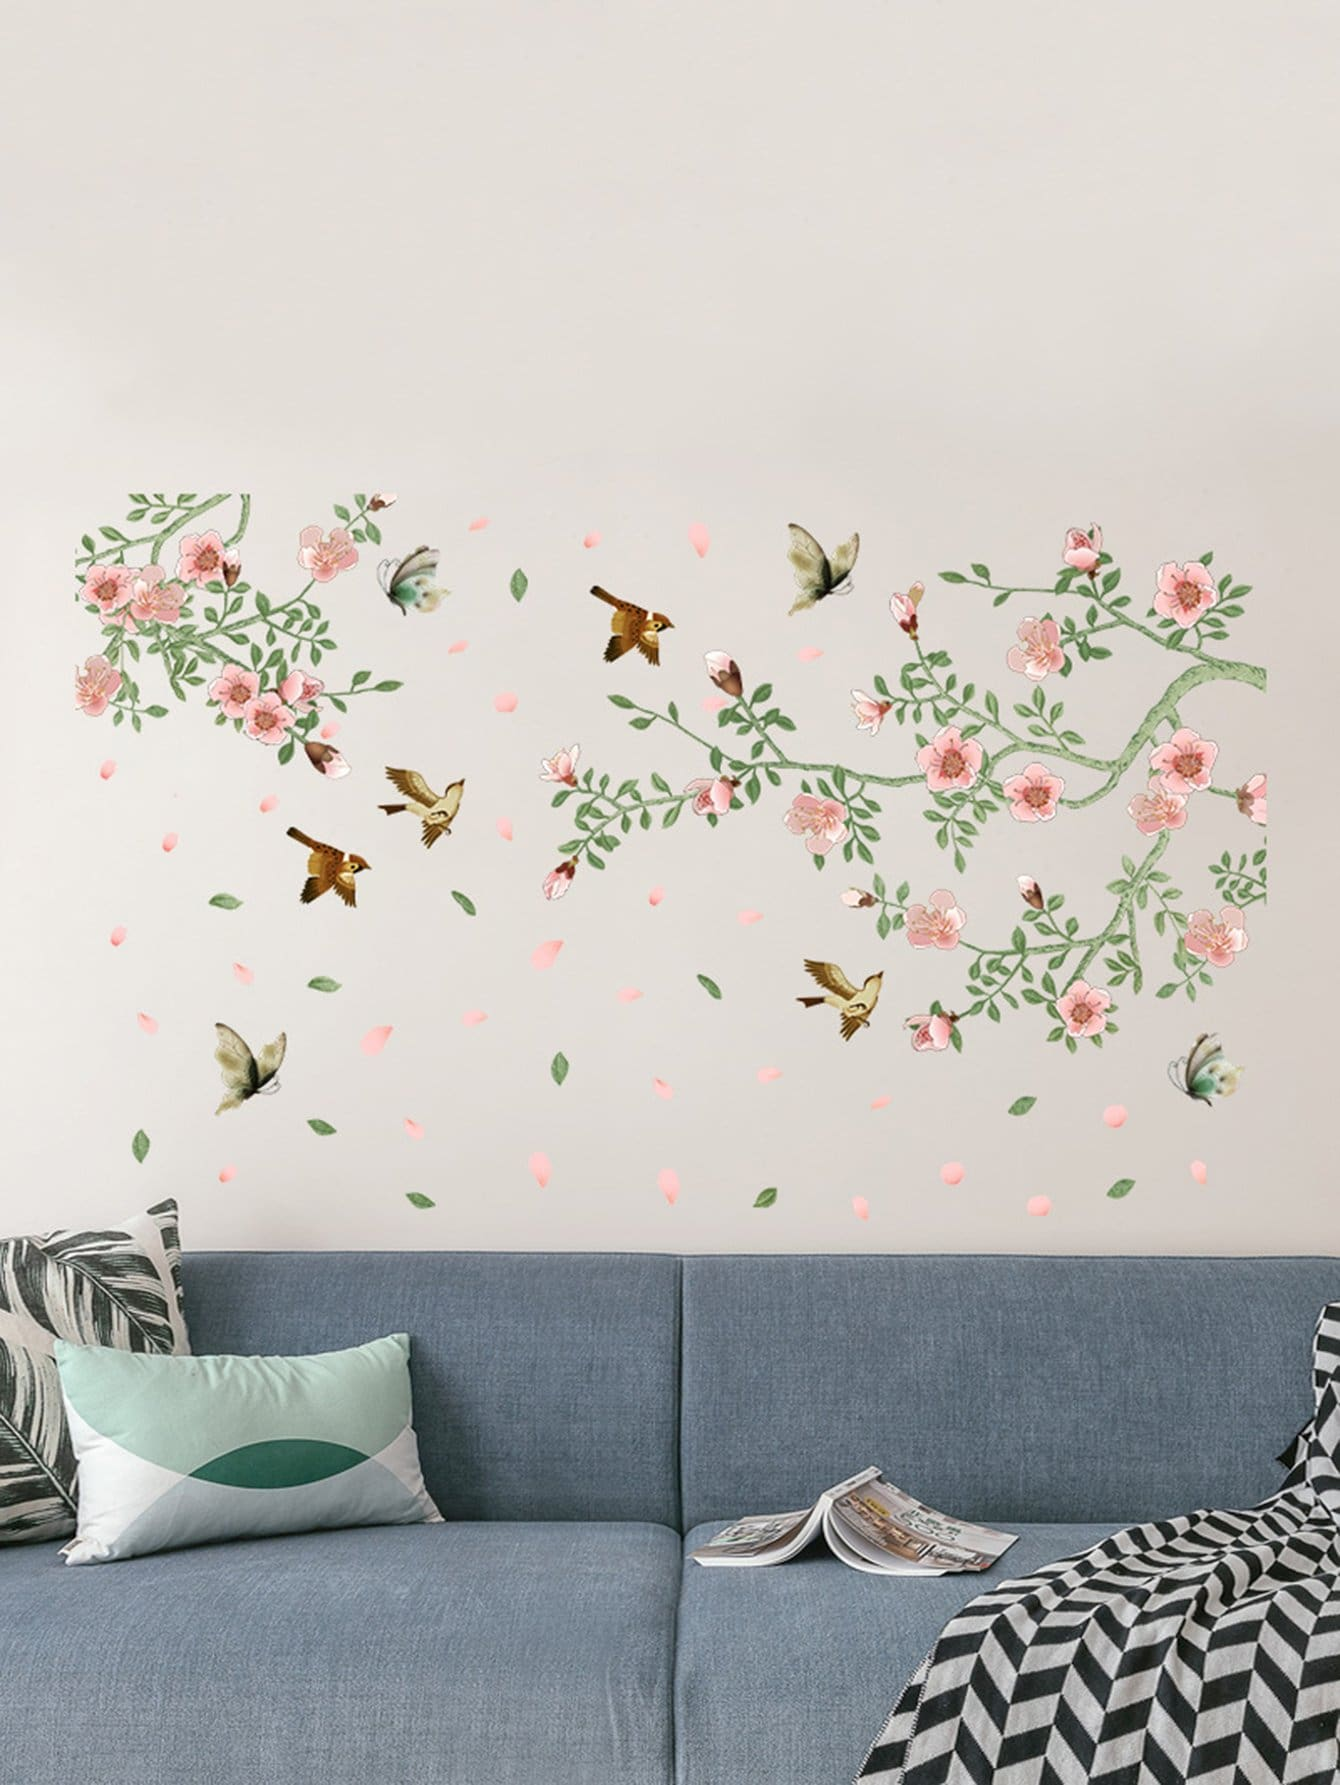 Floral & Birds Pattern Wall Decal floral girl wall decal